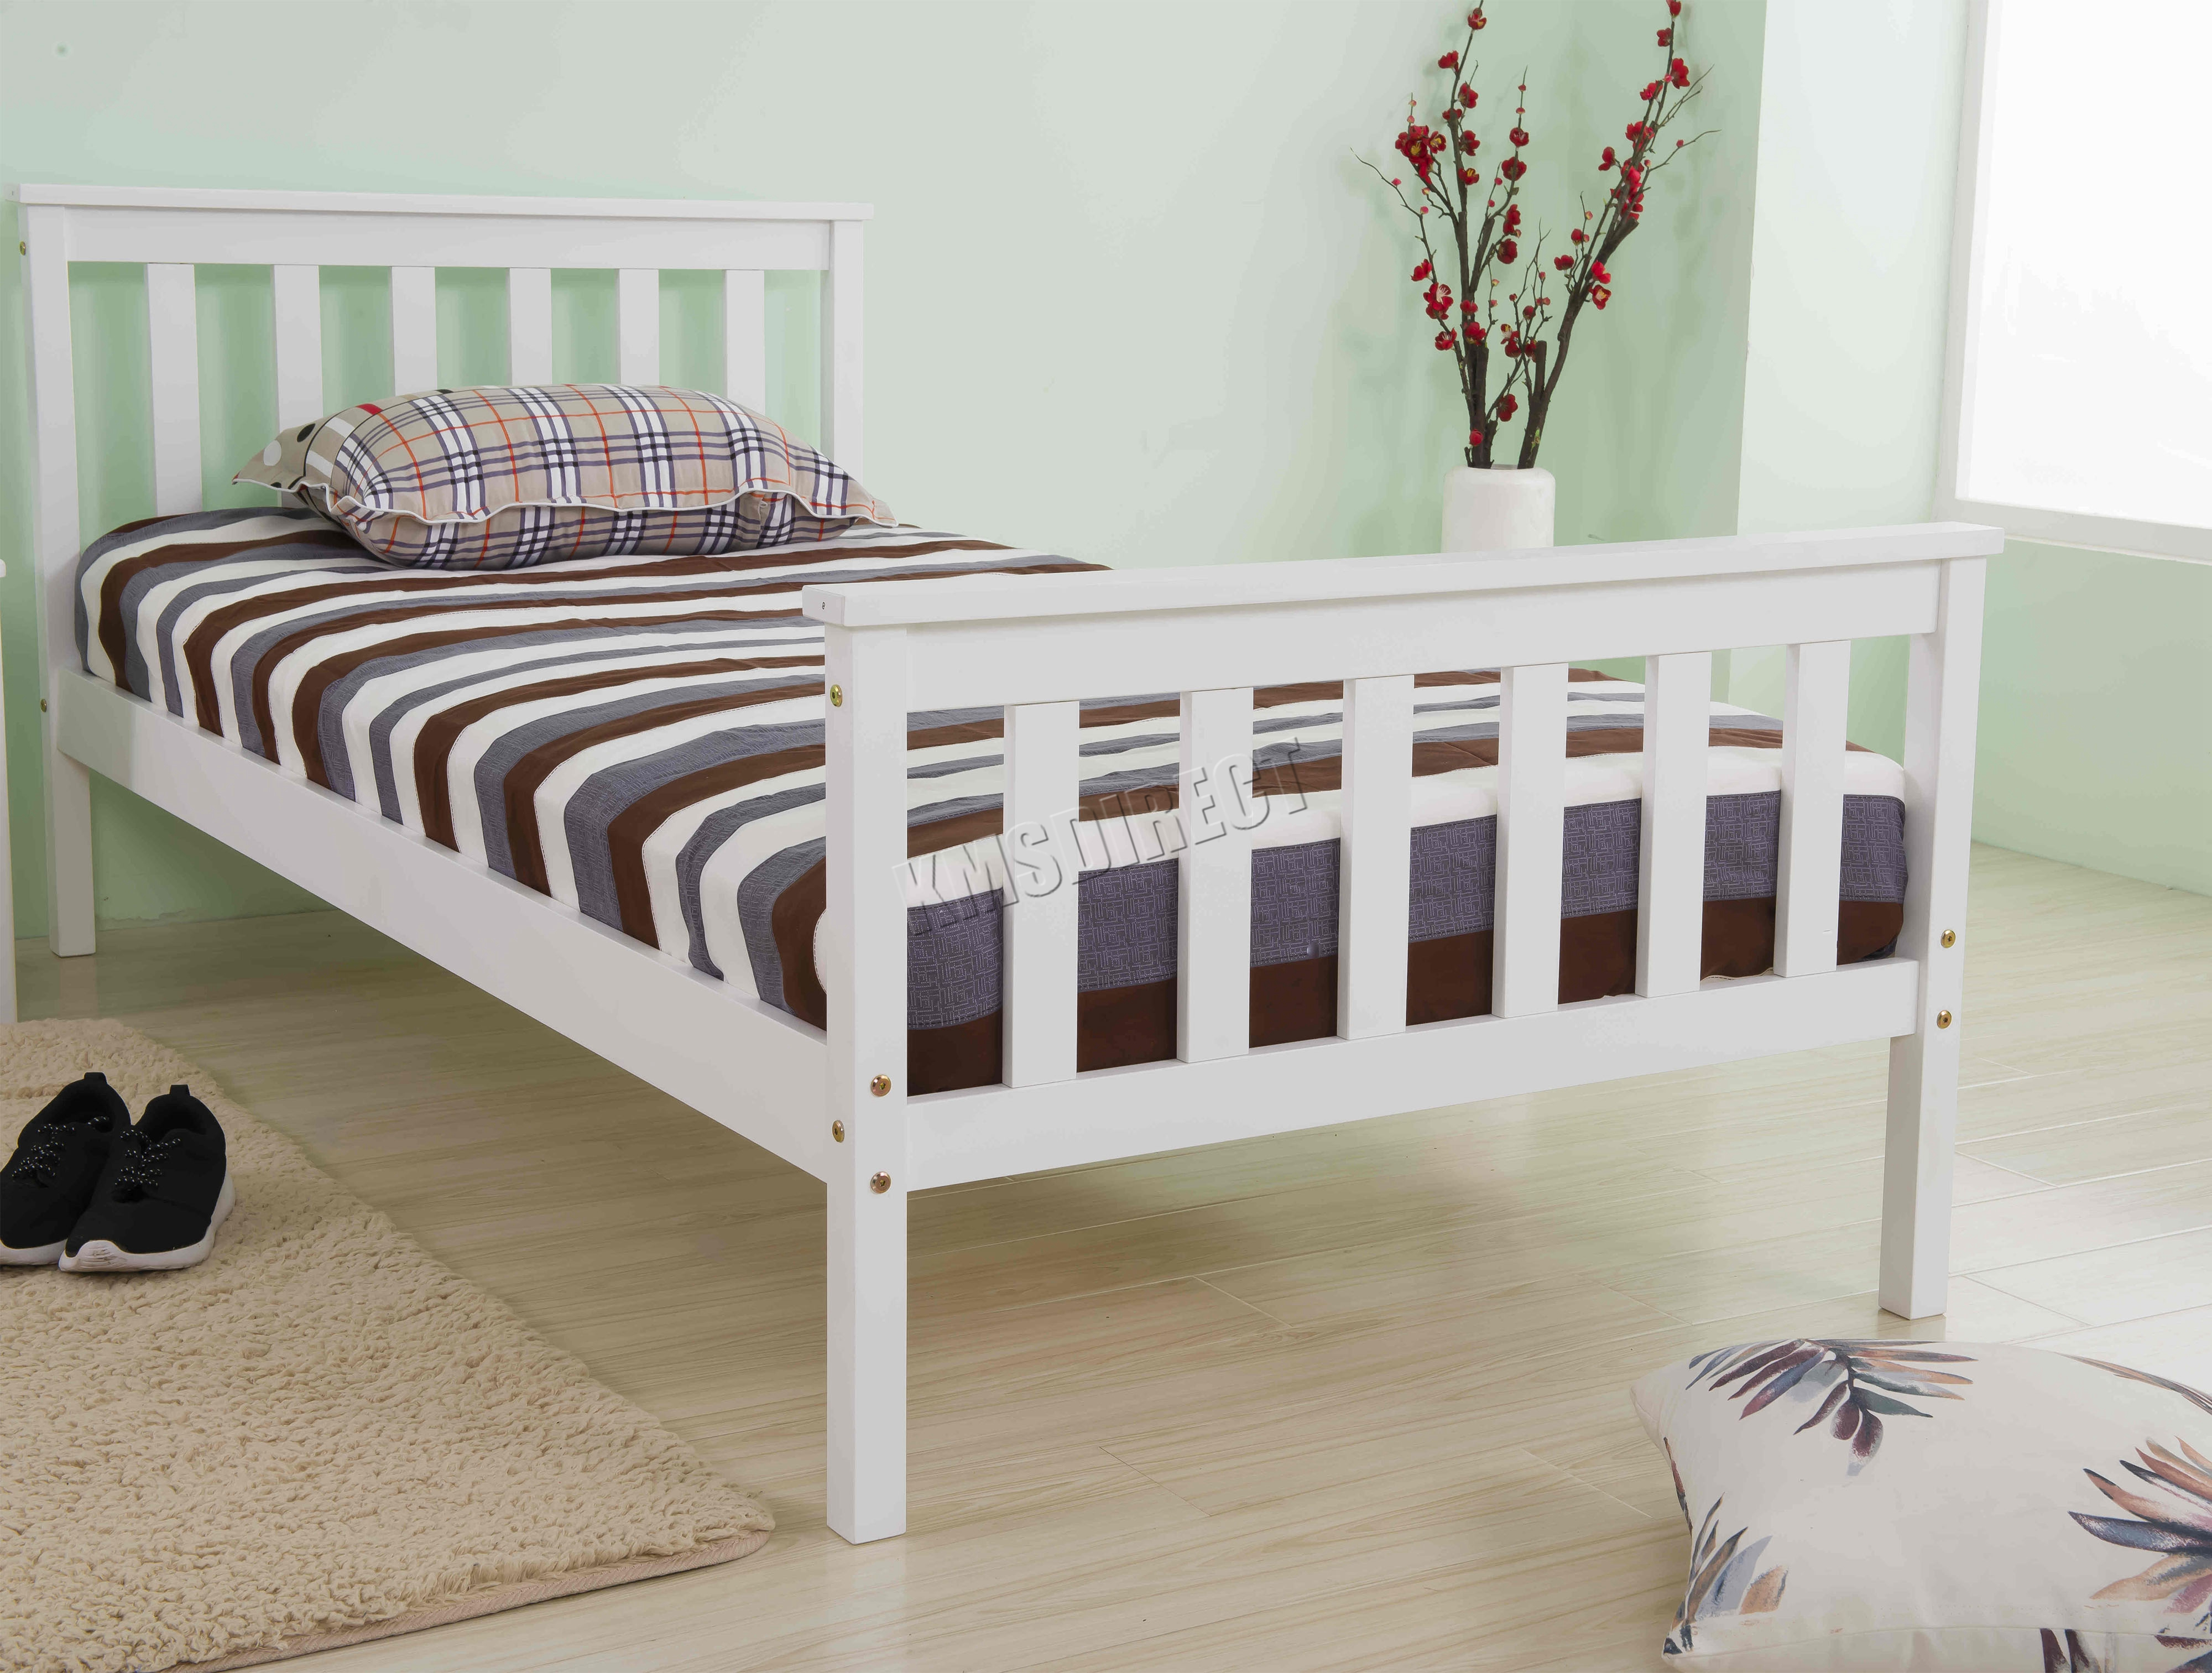 Pine Wood Bedroom Furniture Foxhunter 3ft Single Wooden Bed Frame Pine Bedroom Home Furniture